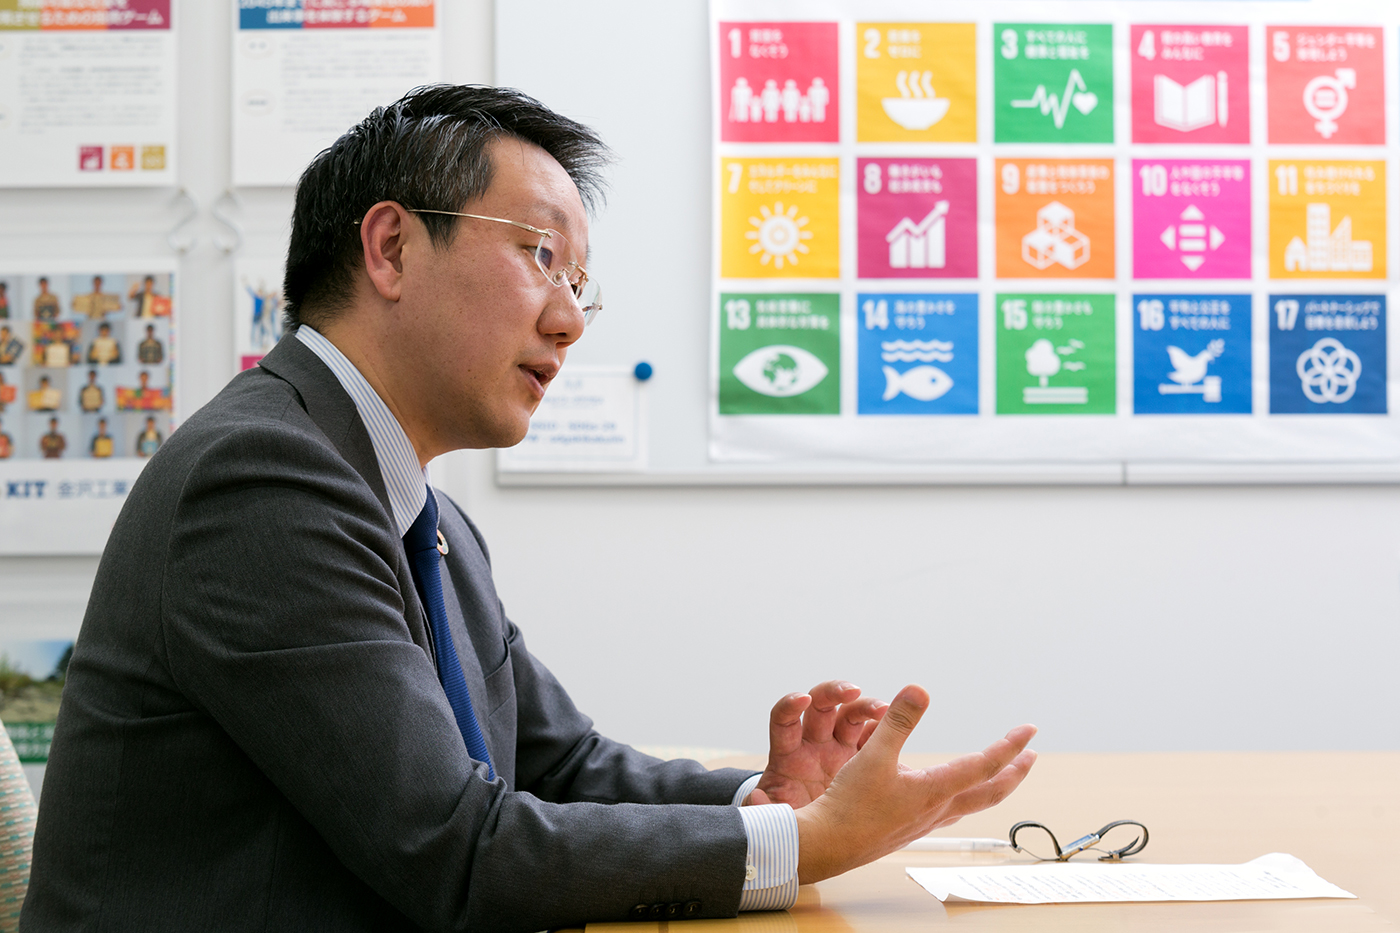 Find tips for SDG initiatives in Japanese companies' businesses to solve societal issues